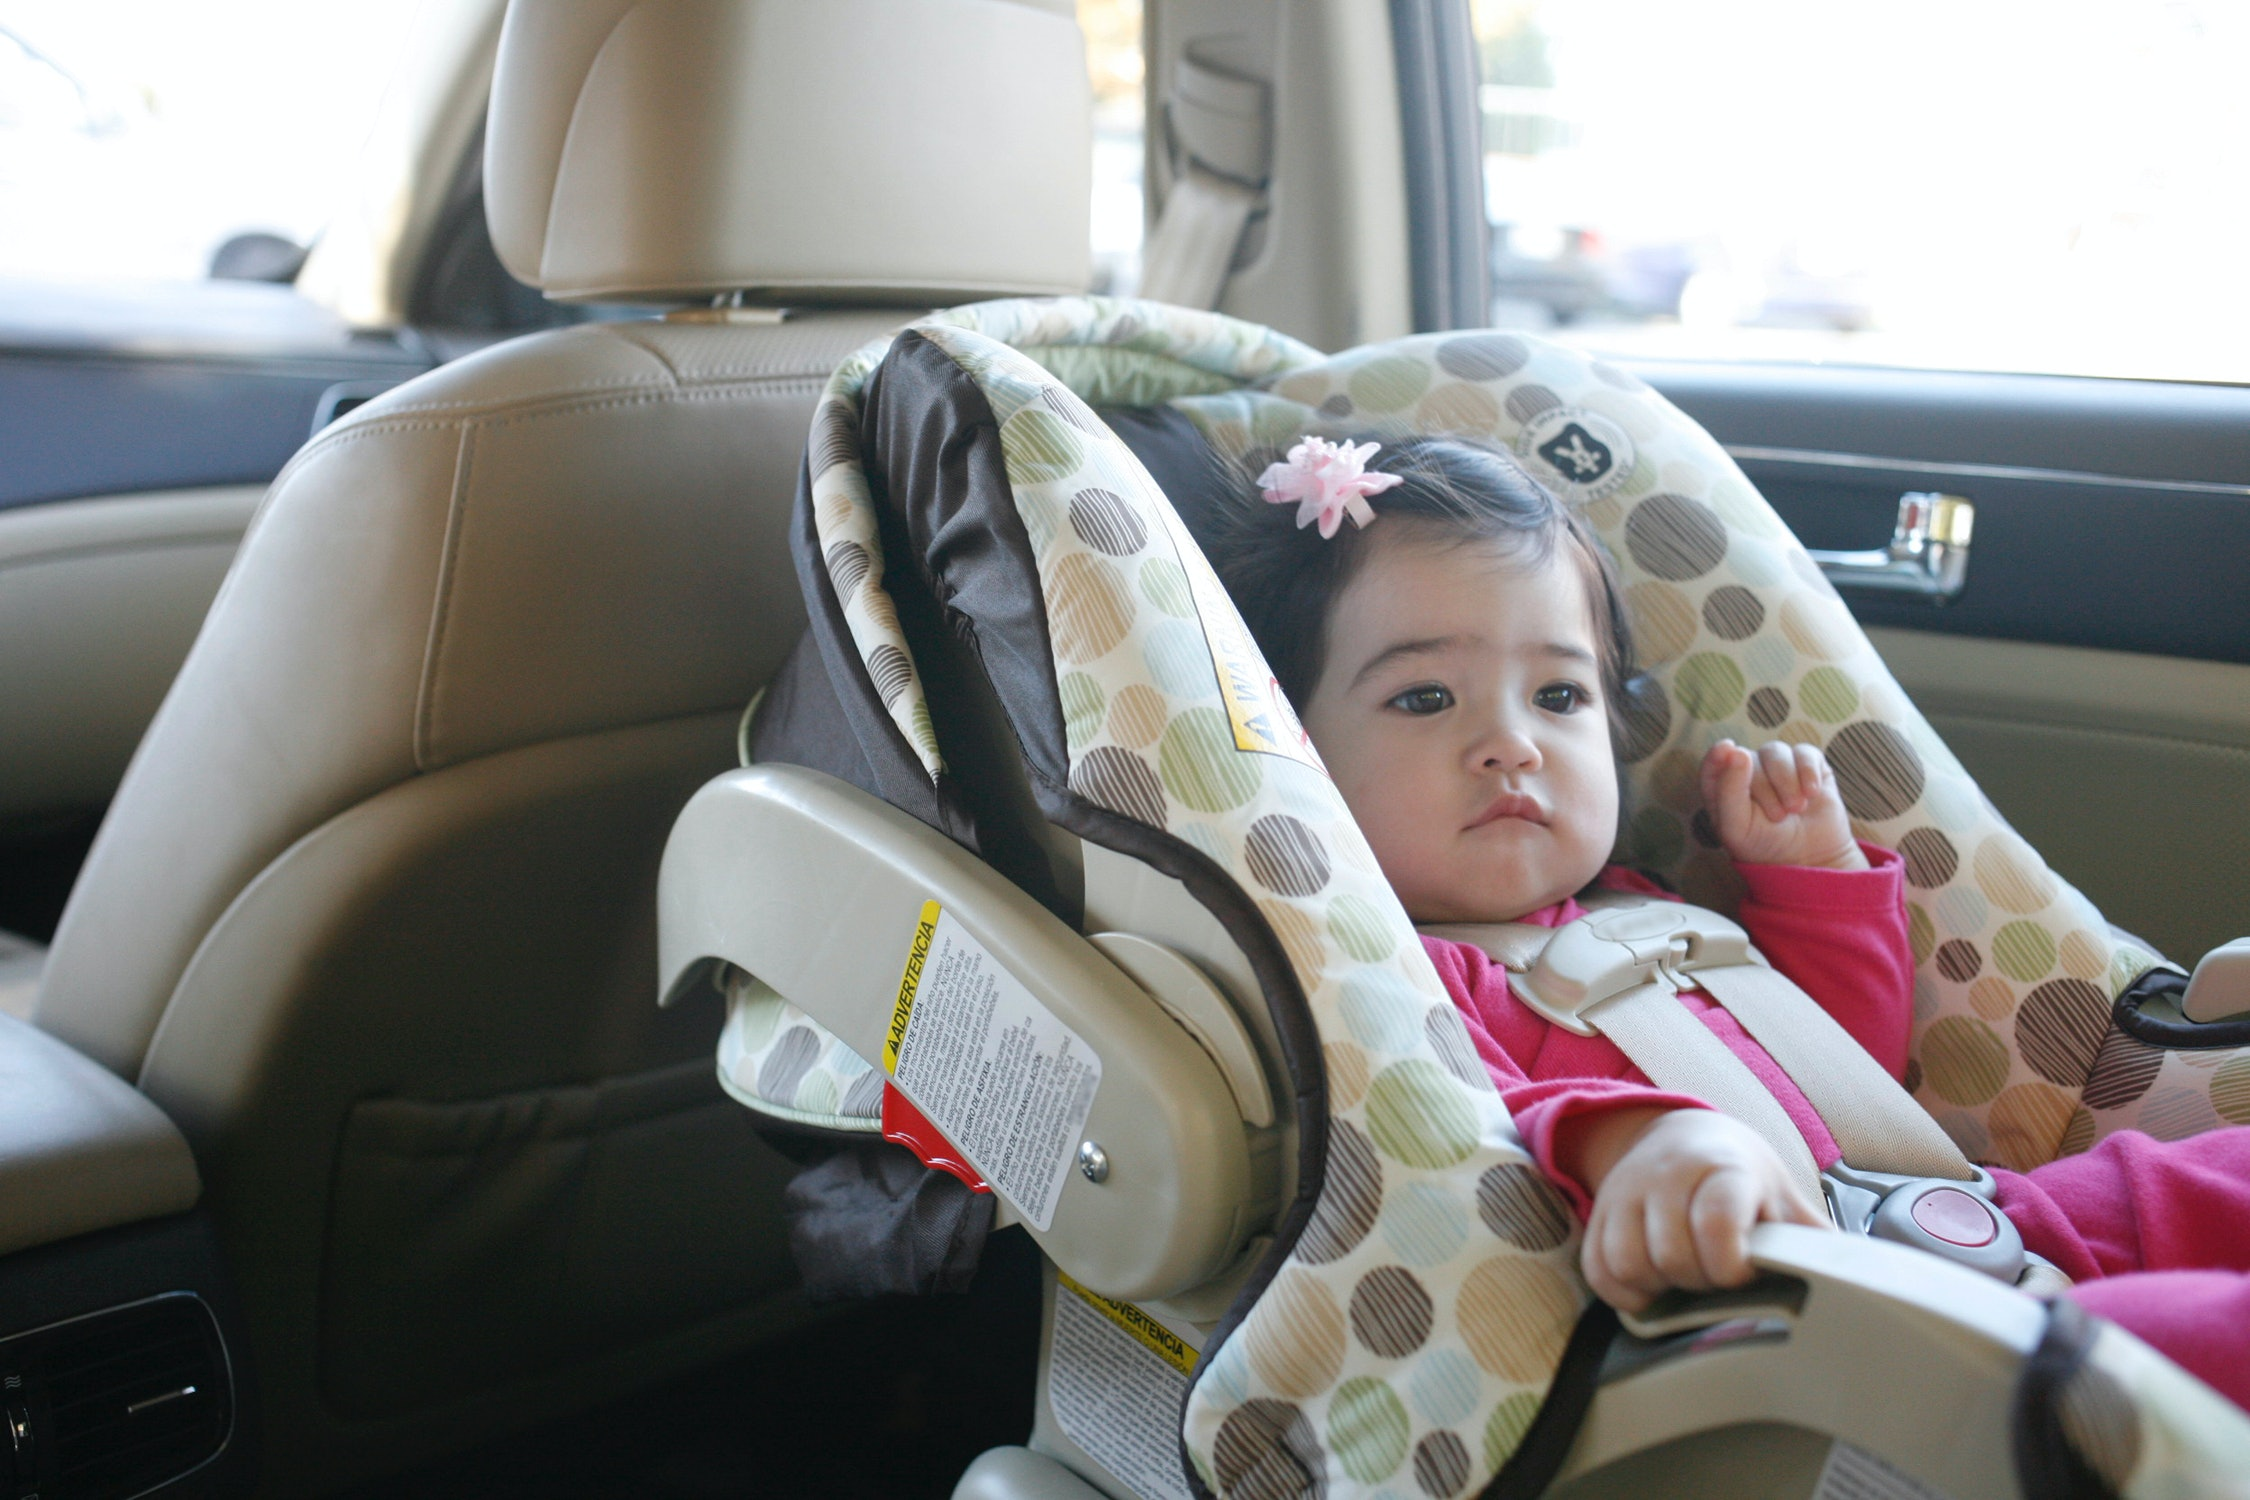 How To Keep Baby From Sweating In The Car Seat Because Summer Heat Is No Joke